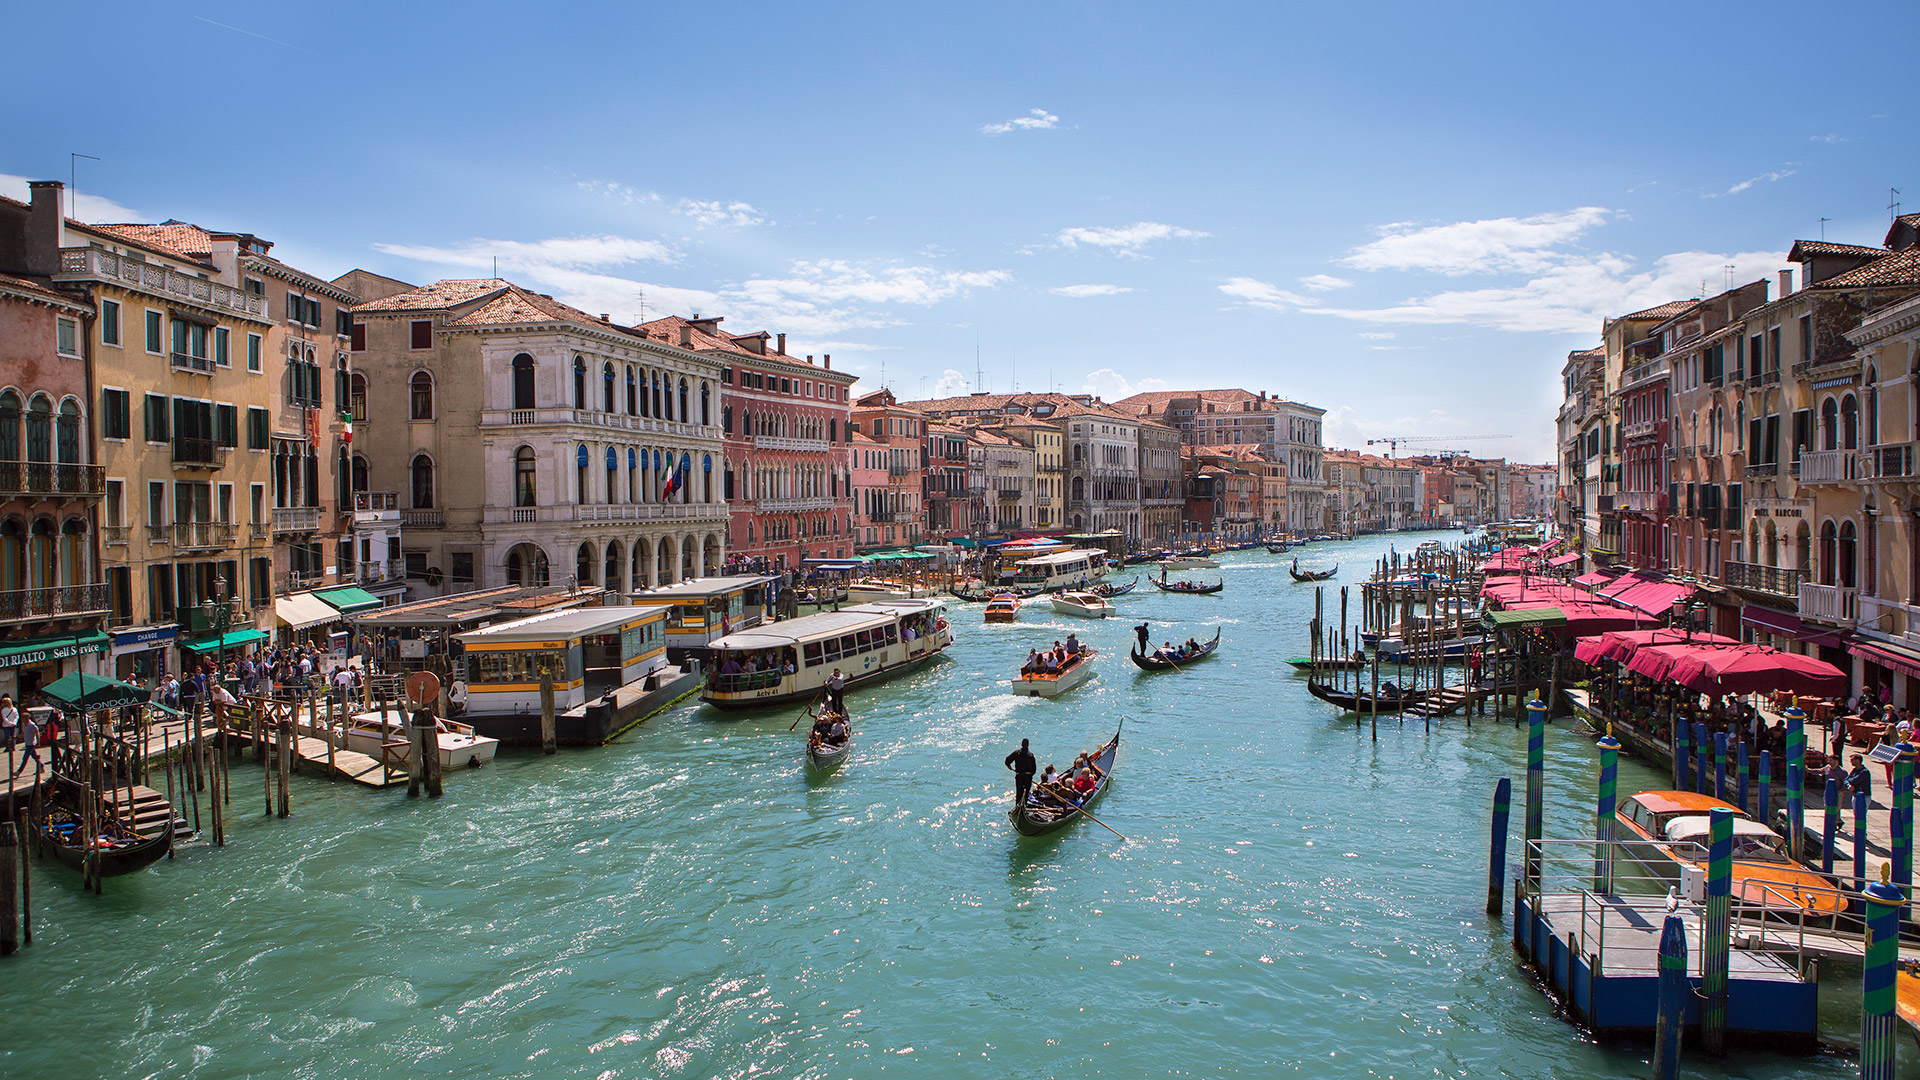 Venice The Gems Of Northern Italy Venice To Venice 2019 By